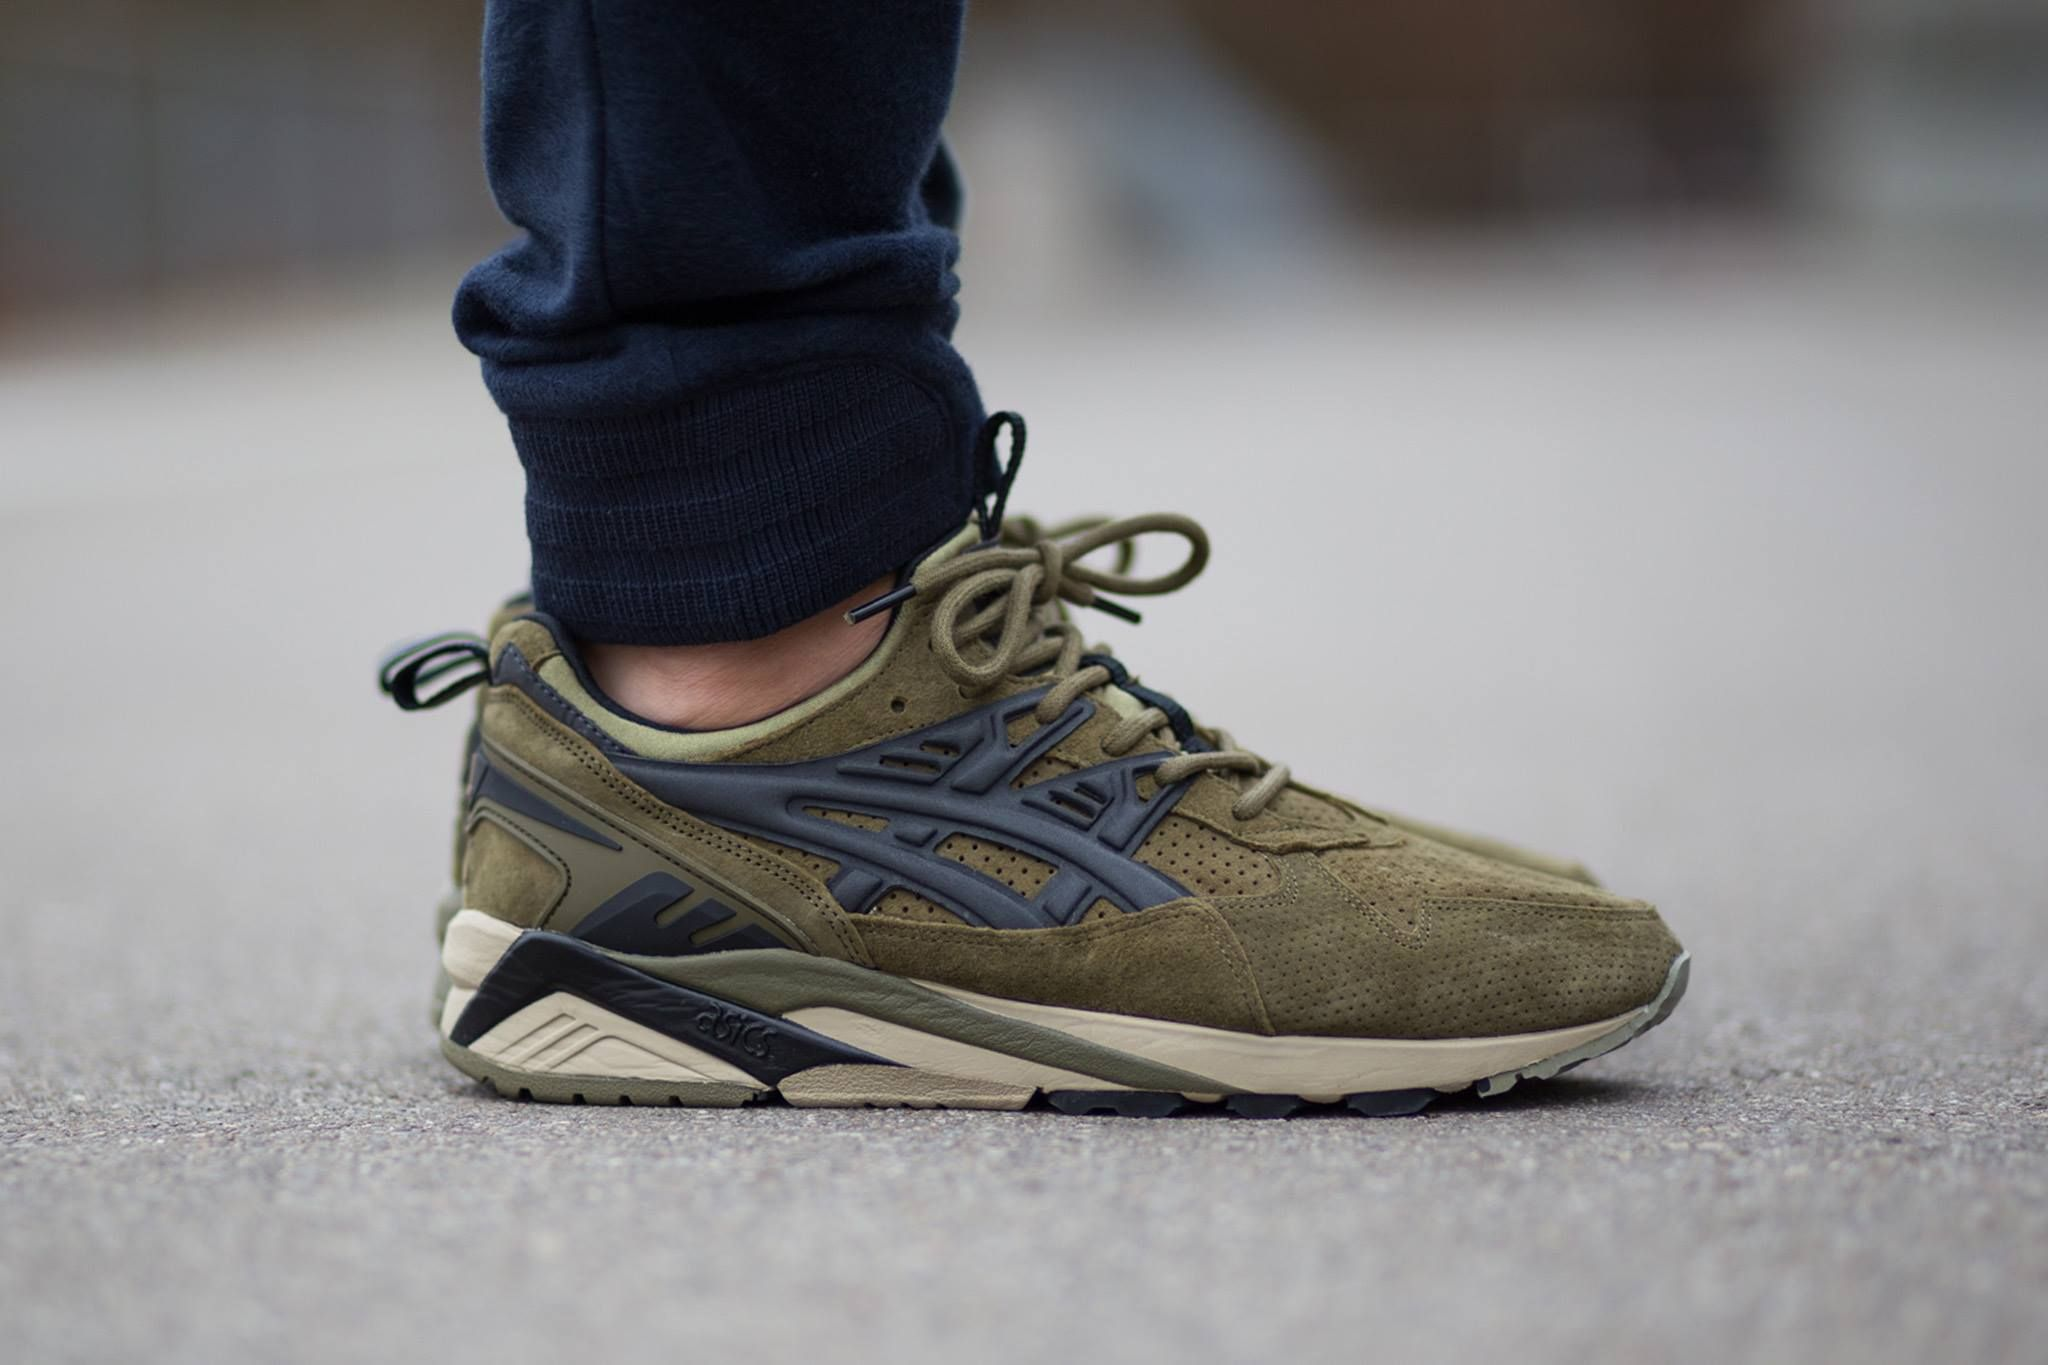 Footpatrol x Asics Gel Kayano Trainer | Shoes | Sneaker